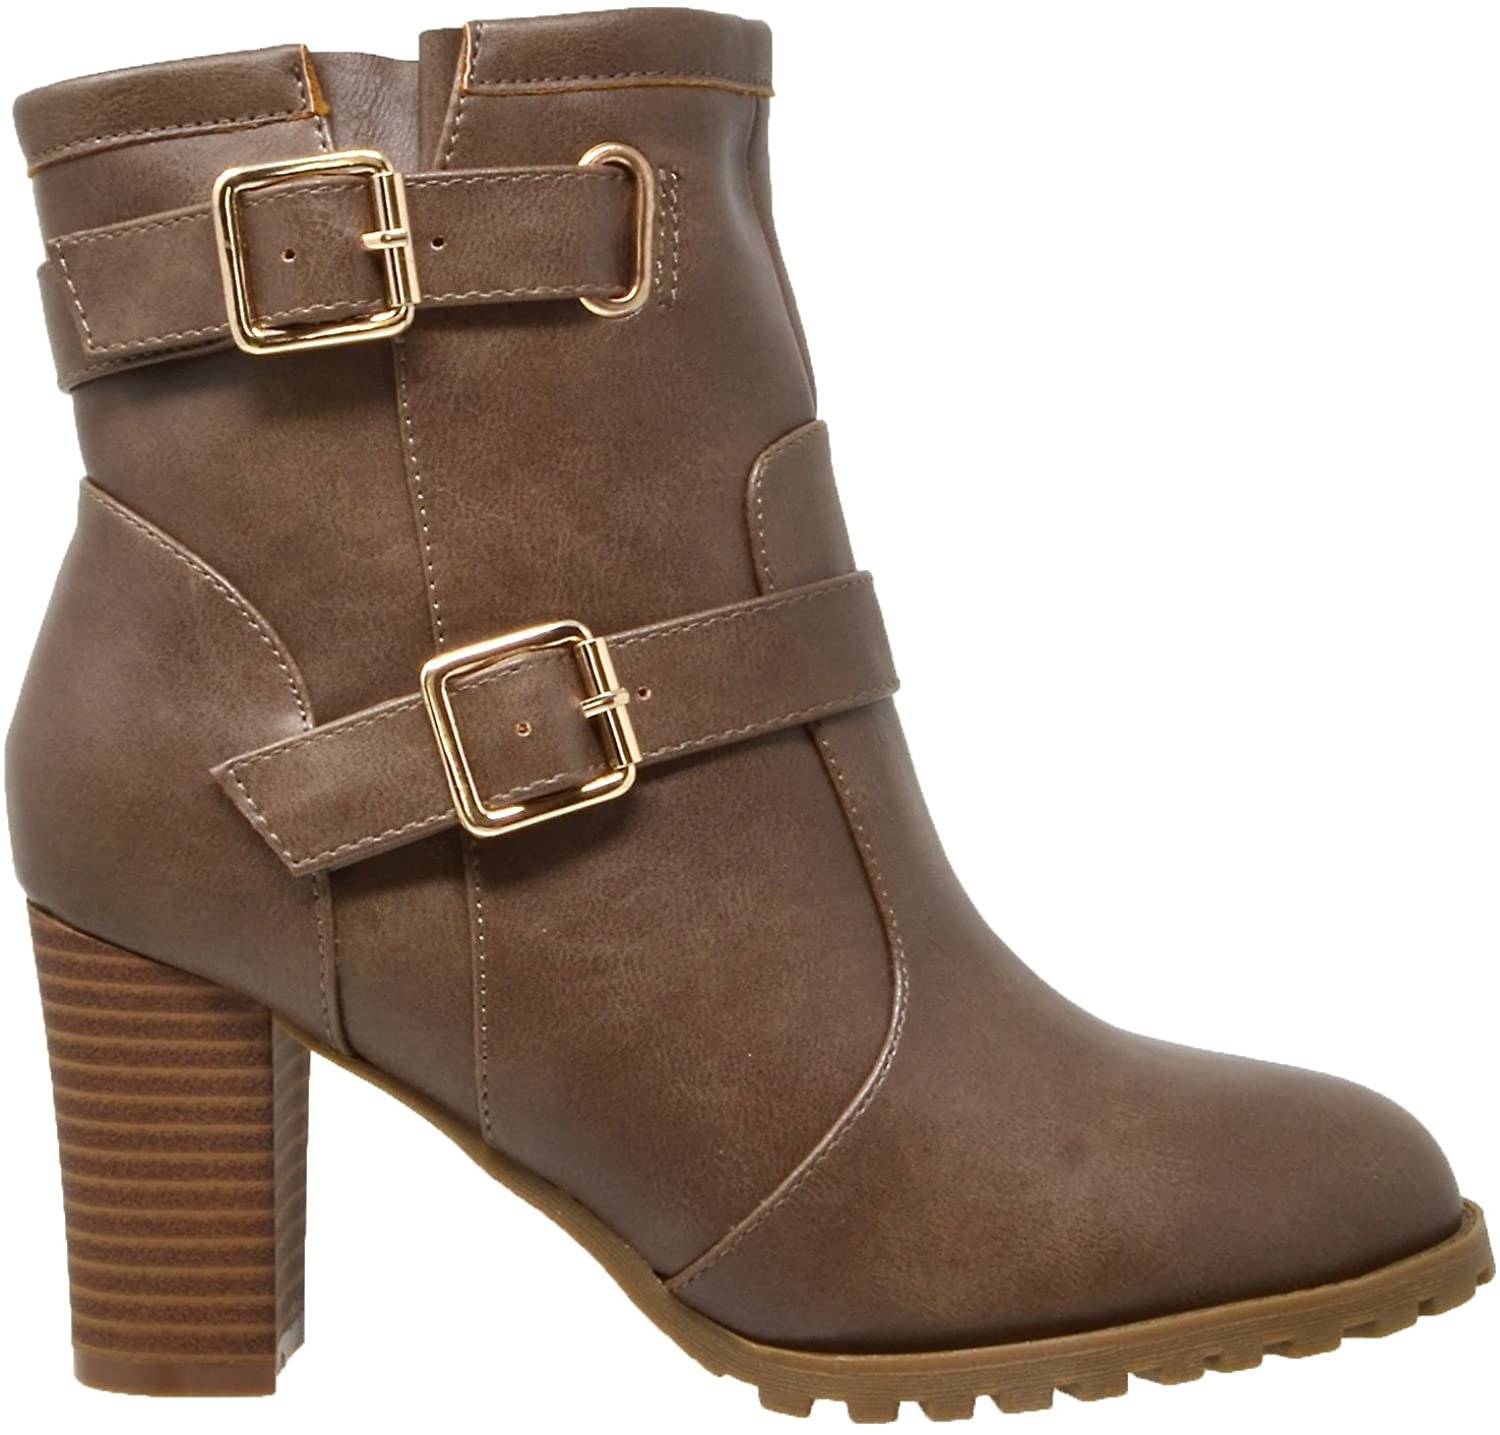 taupe booties with buckle details and stacked heel